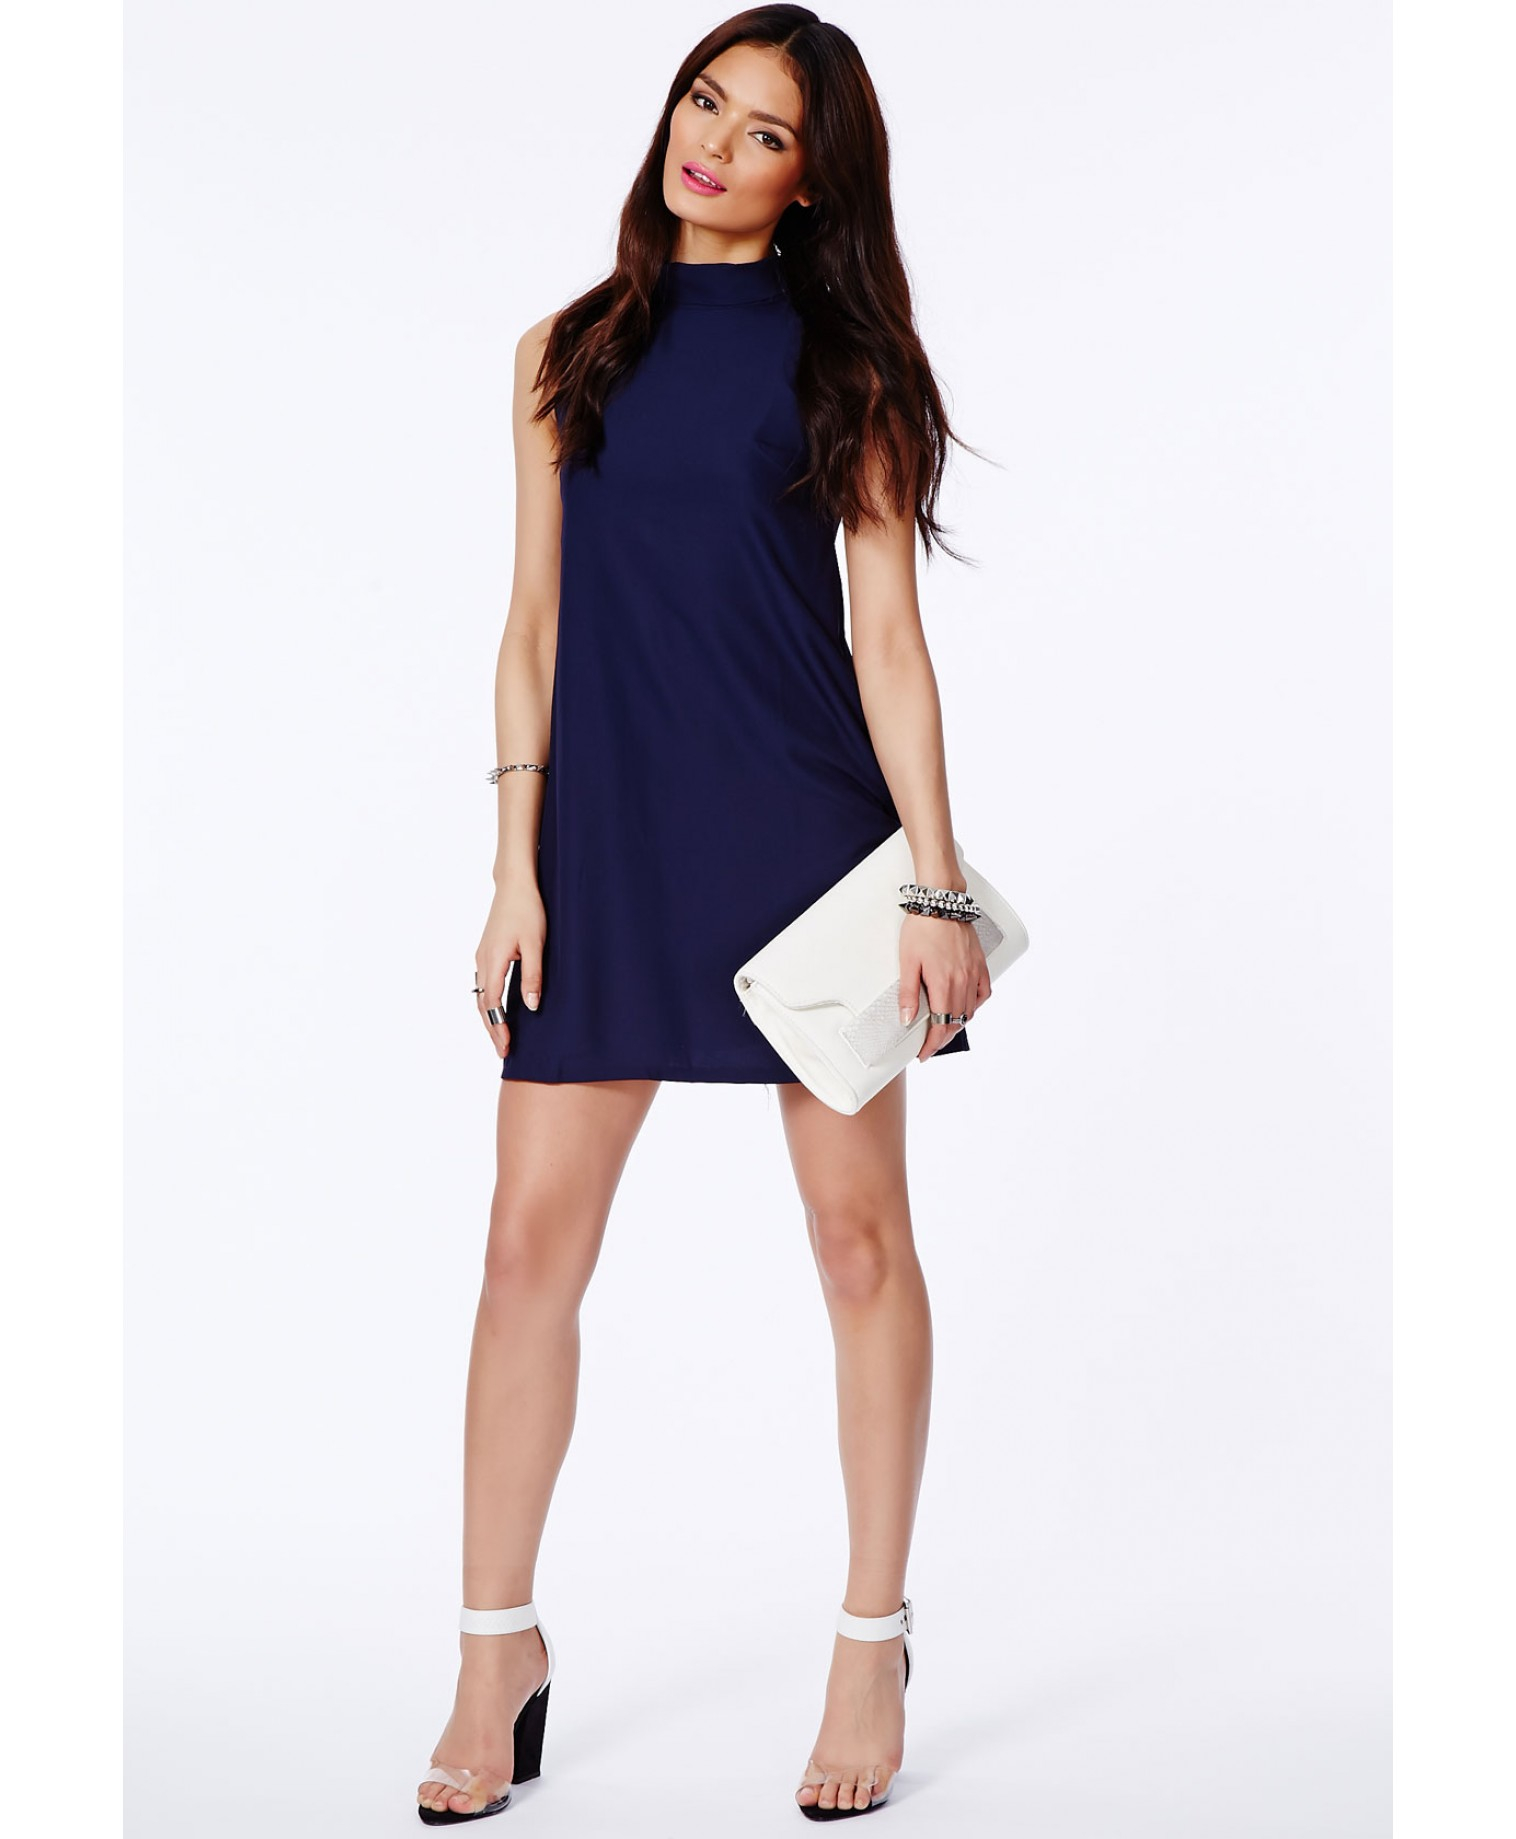 56f7629137 Lyst - Missguided Jemna Navy Shift Dress With Roll Neck in Blue